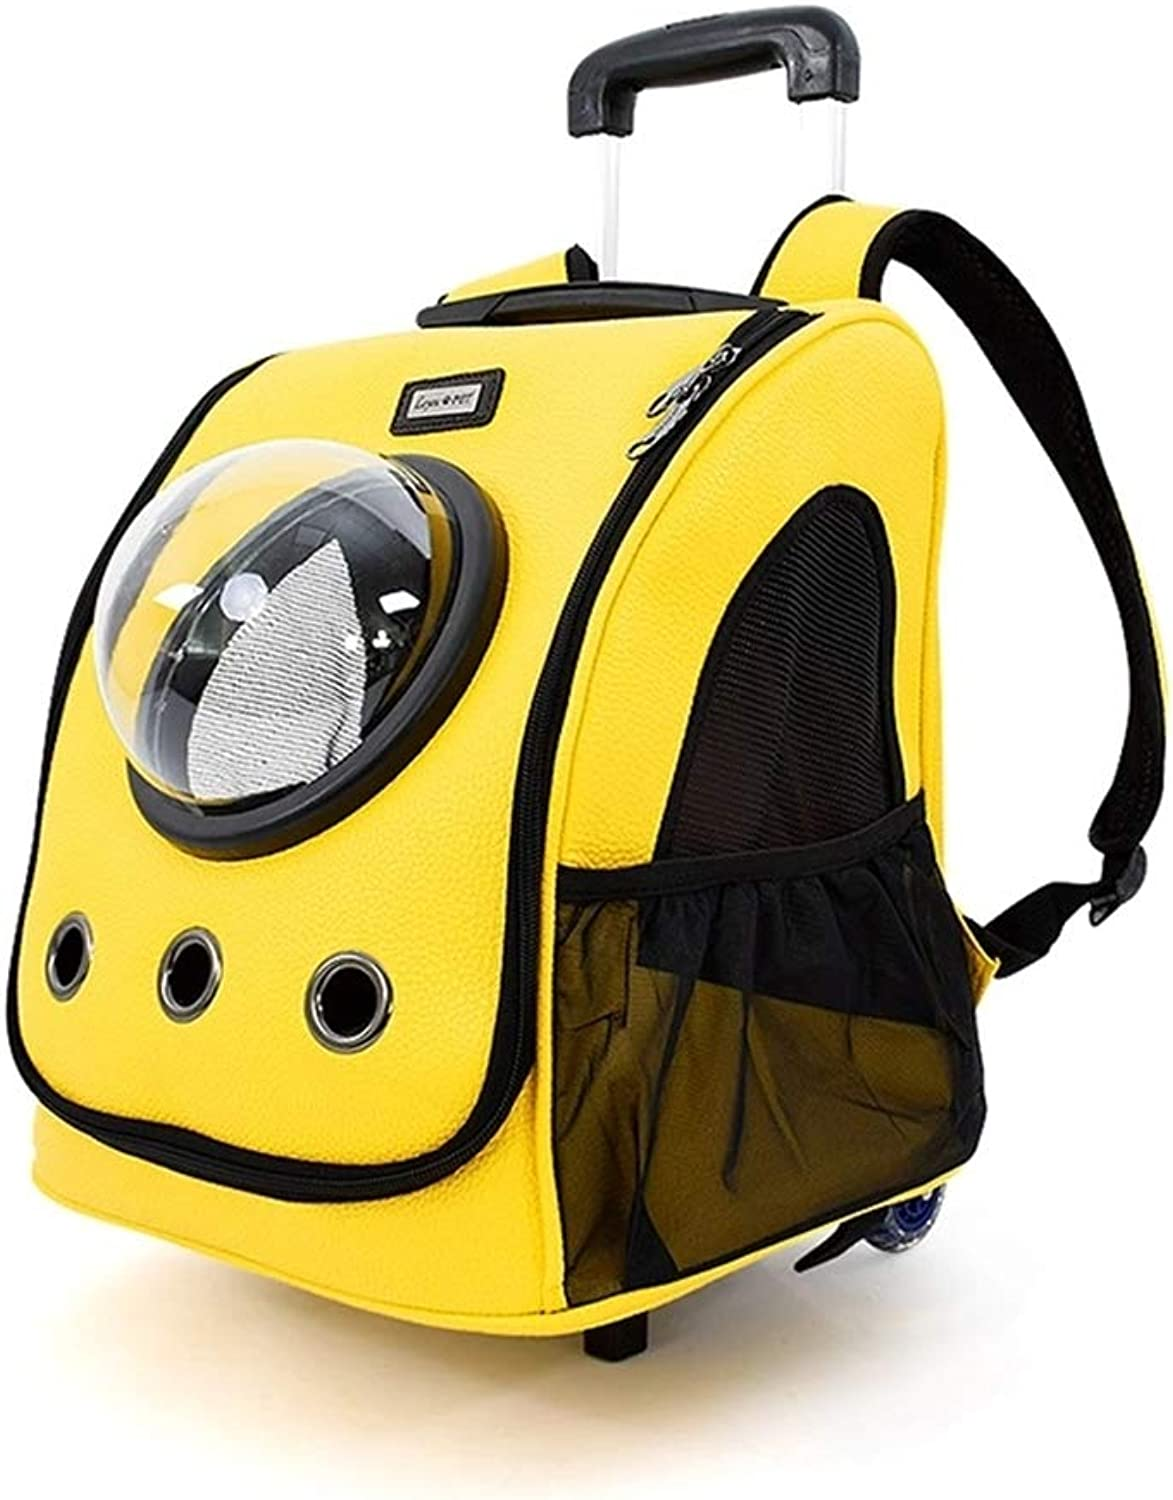 Pet Trolley Case Pets Carrier Travel Bag, Dog Travel Large Space Capsule Backpack Dual Use The Height of The Drawbar Can be Adjusted to 4787cm